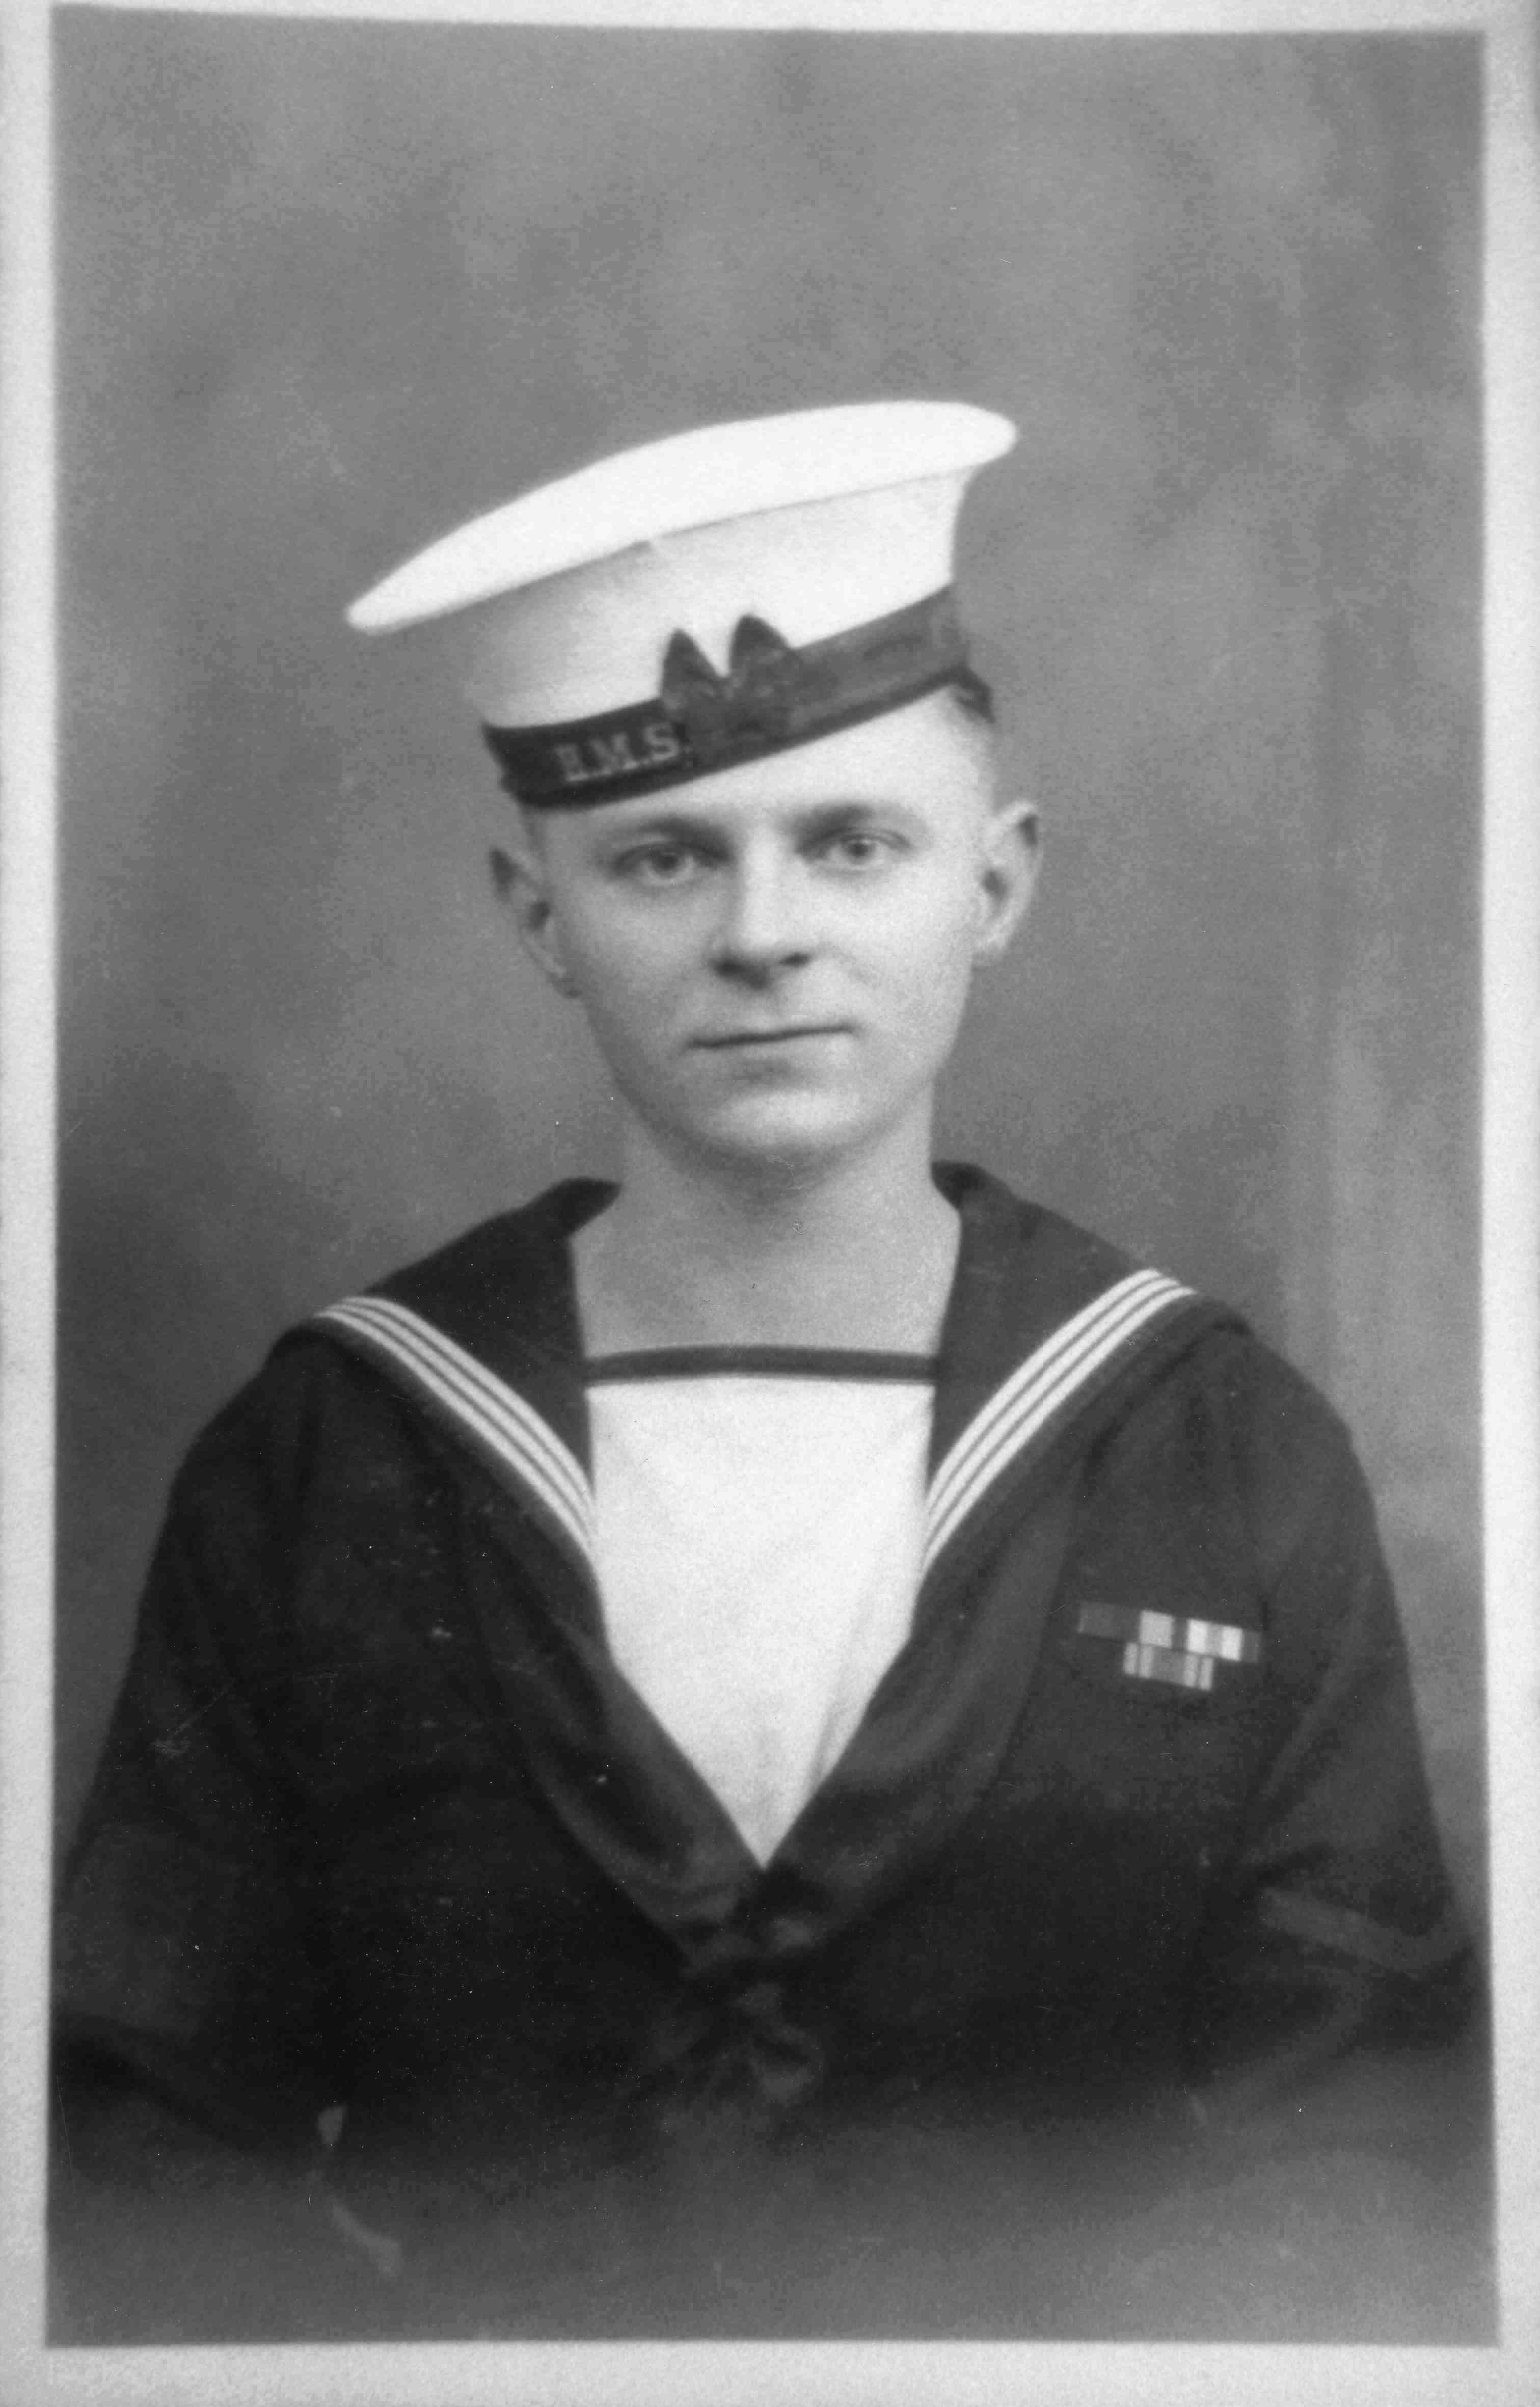 Albert in the Navy